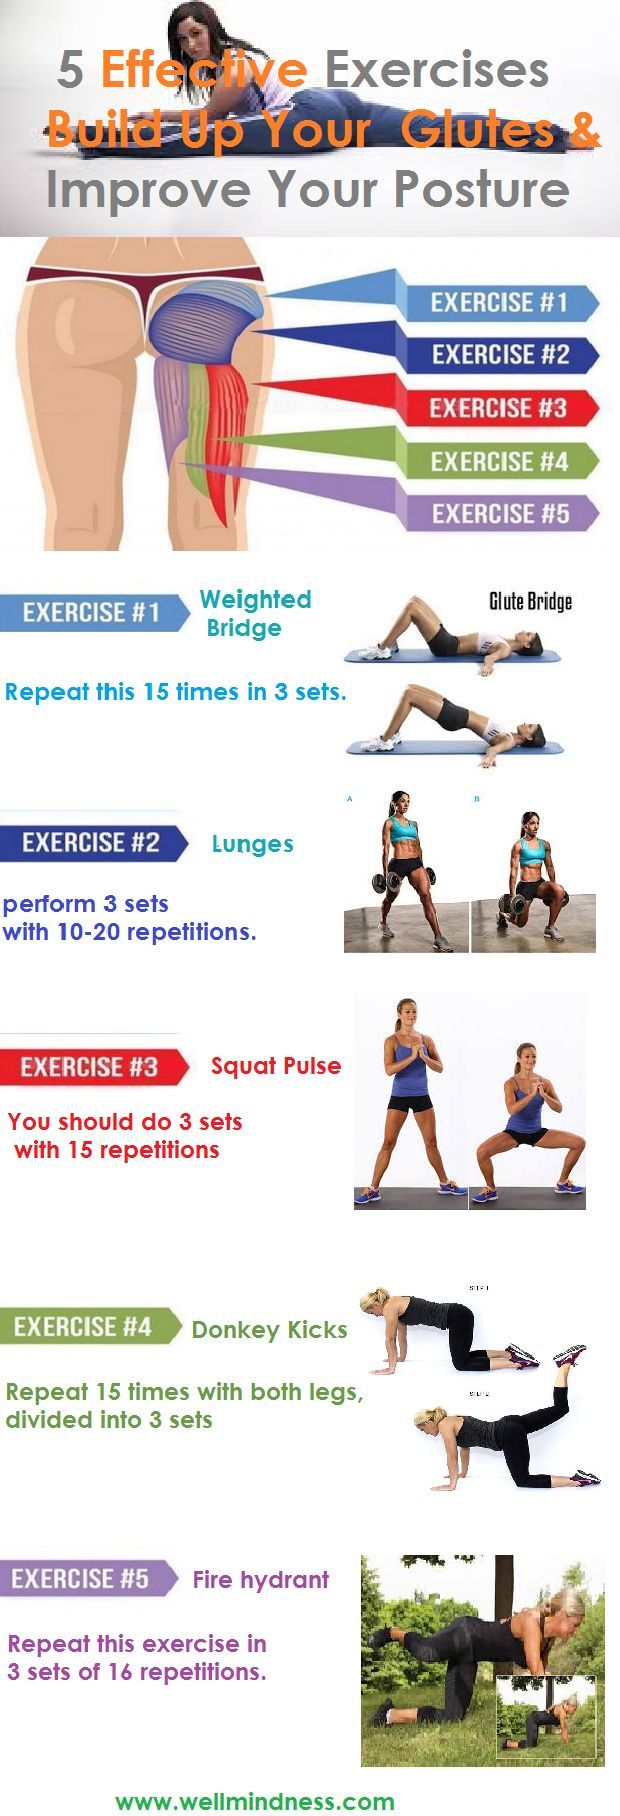 By strengthening the glutes, you will be able to perform high-intensity activities and exercises, and they will also be extremely helpful for various sports and running.